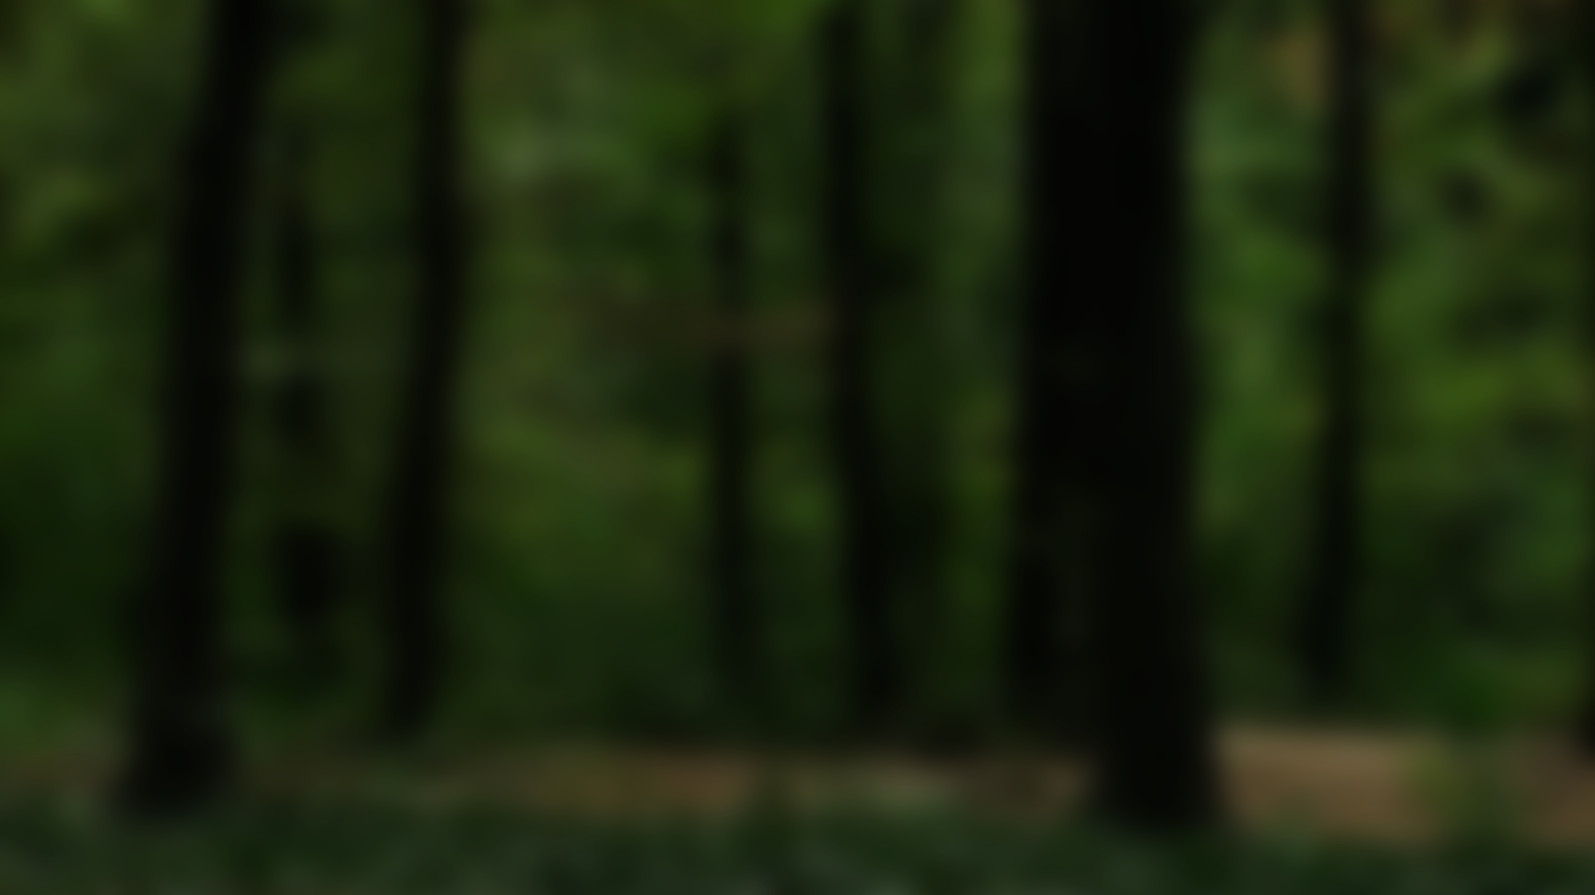 Blurred Forest background.jpg